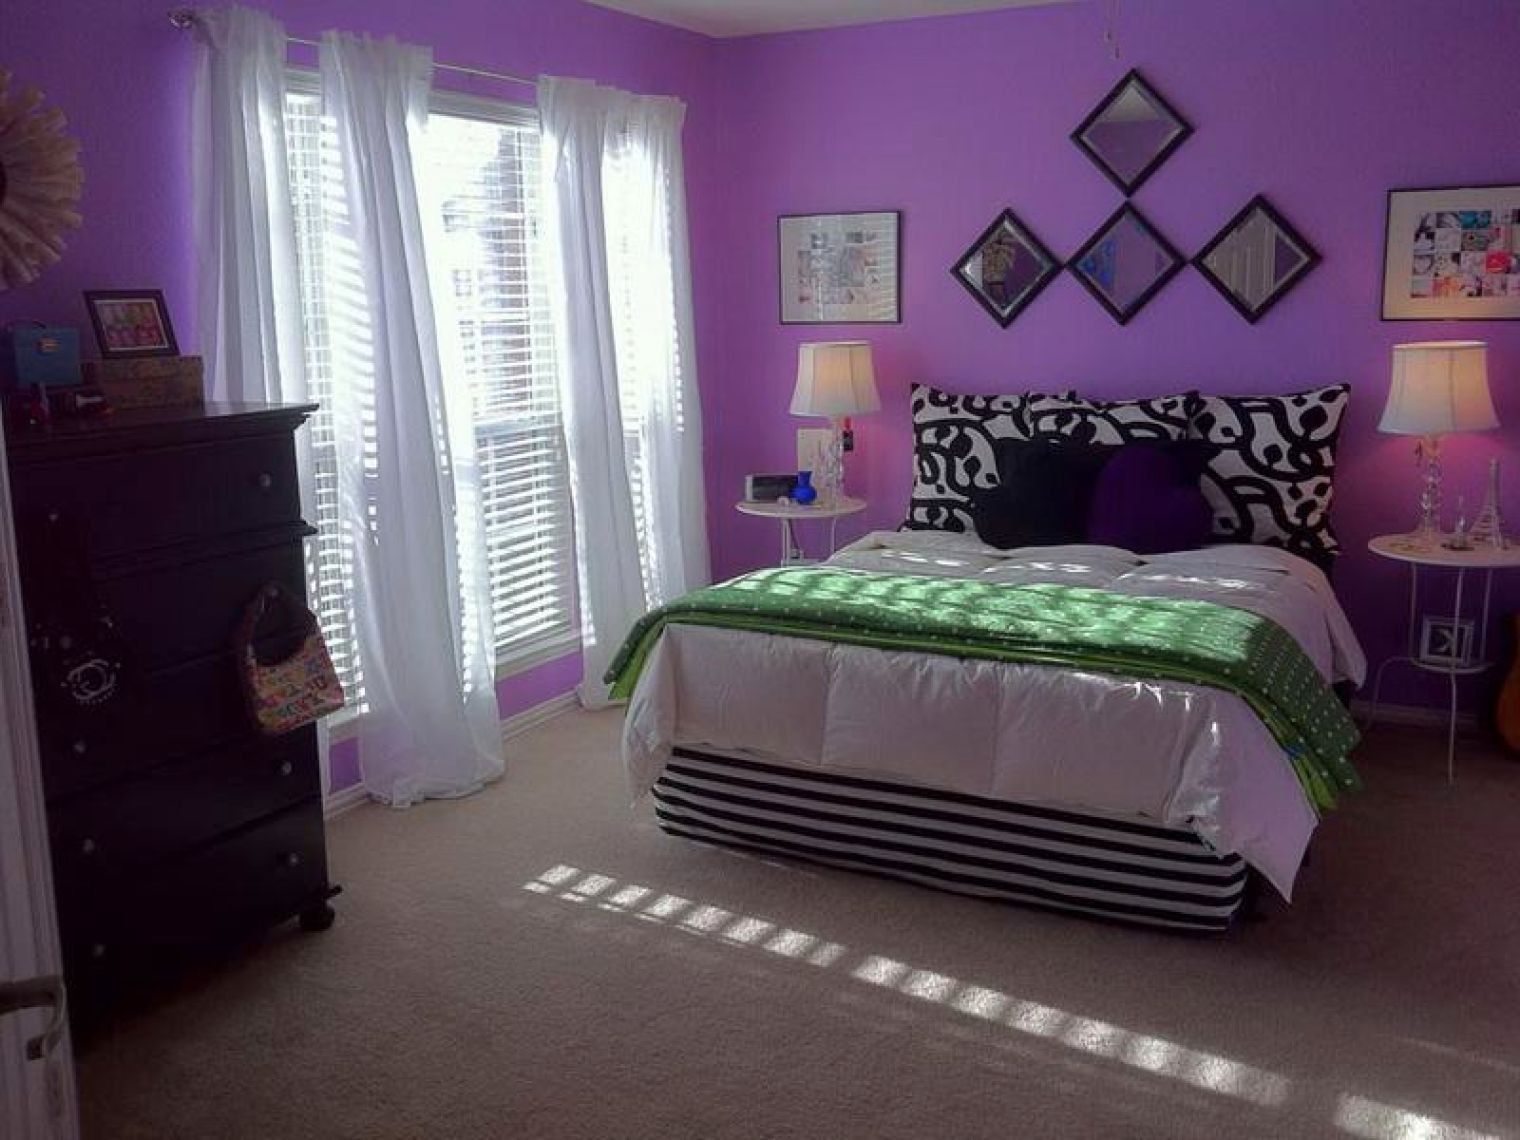 Wall Colour Inspiration: Purple Luxurious Bedroom Wall Paint Color Inspiration